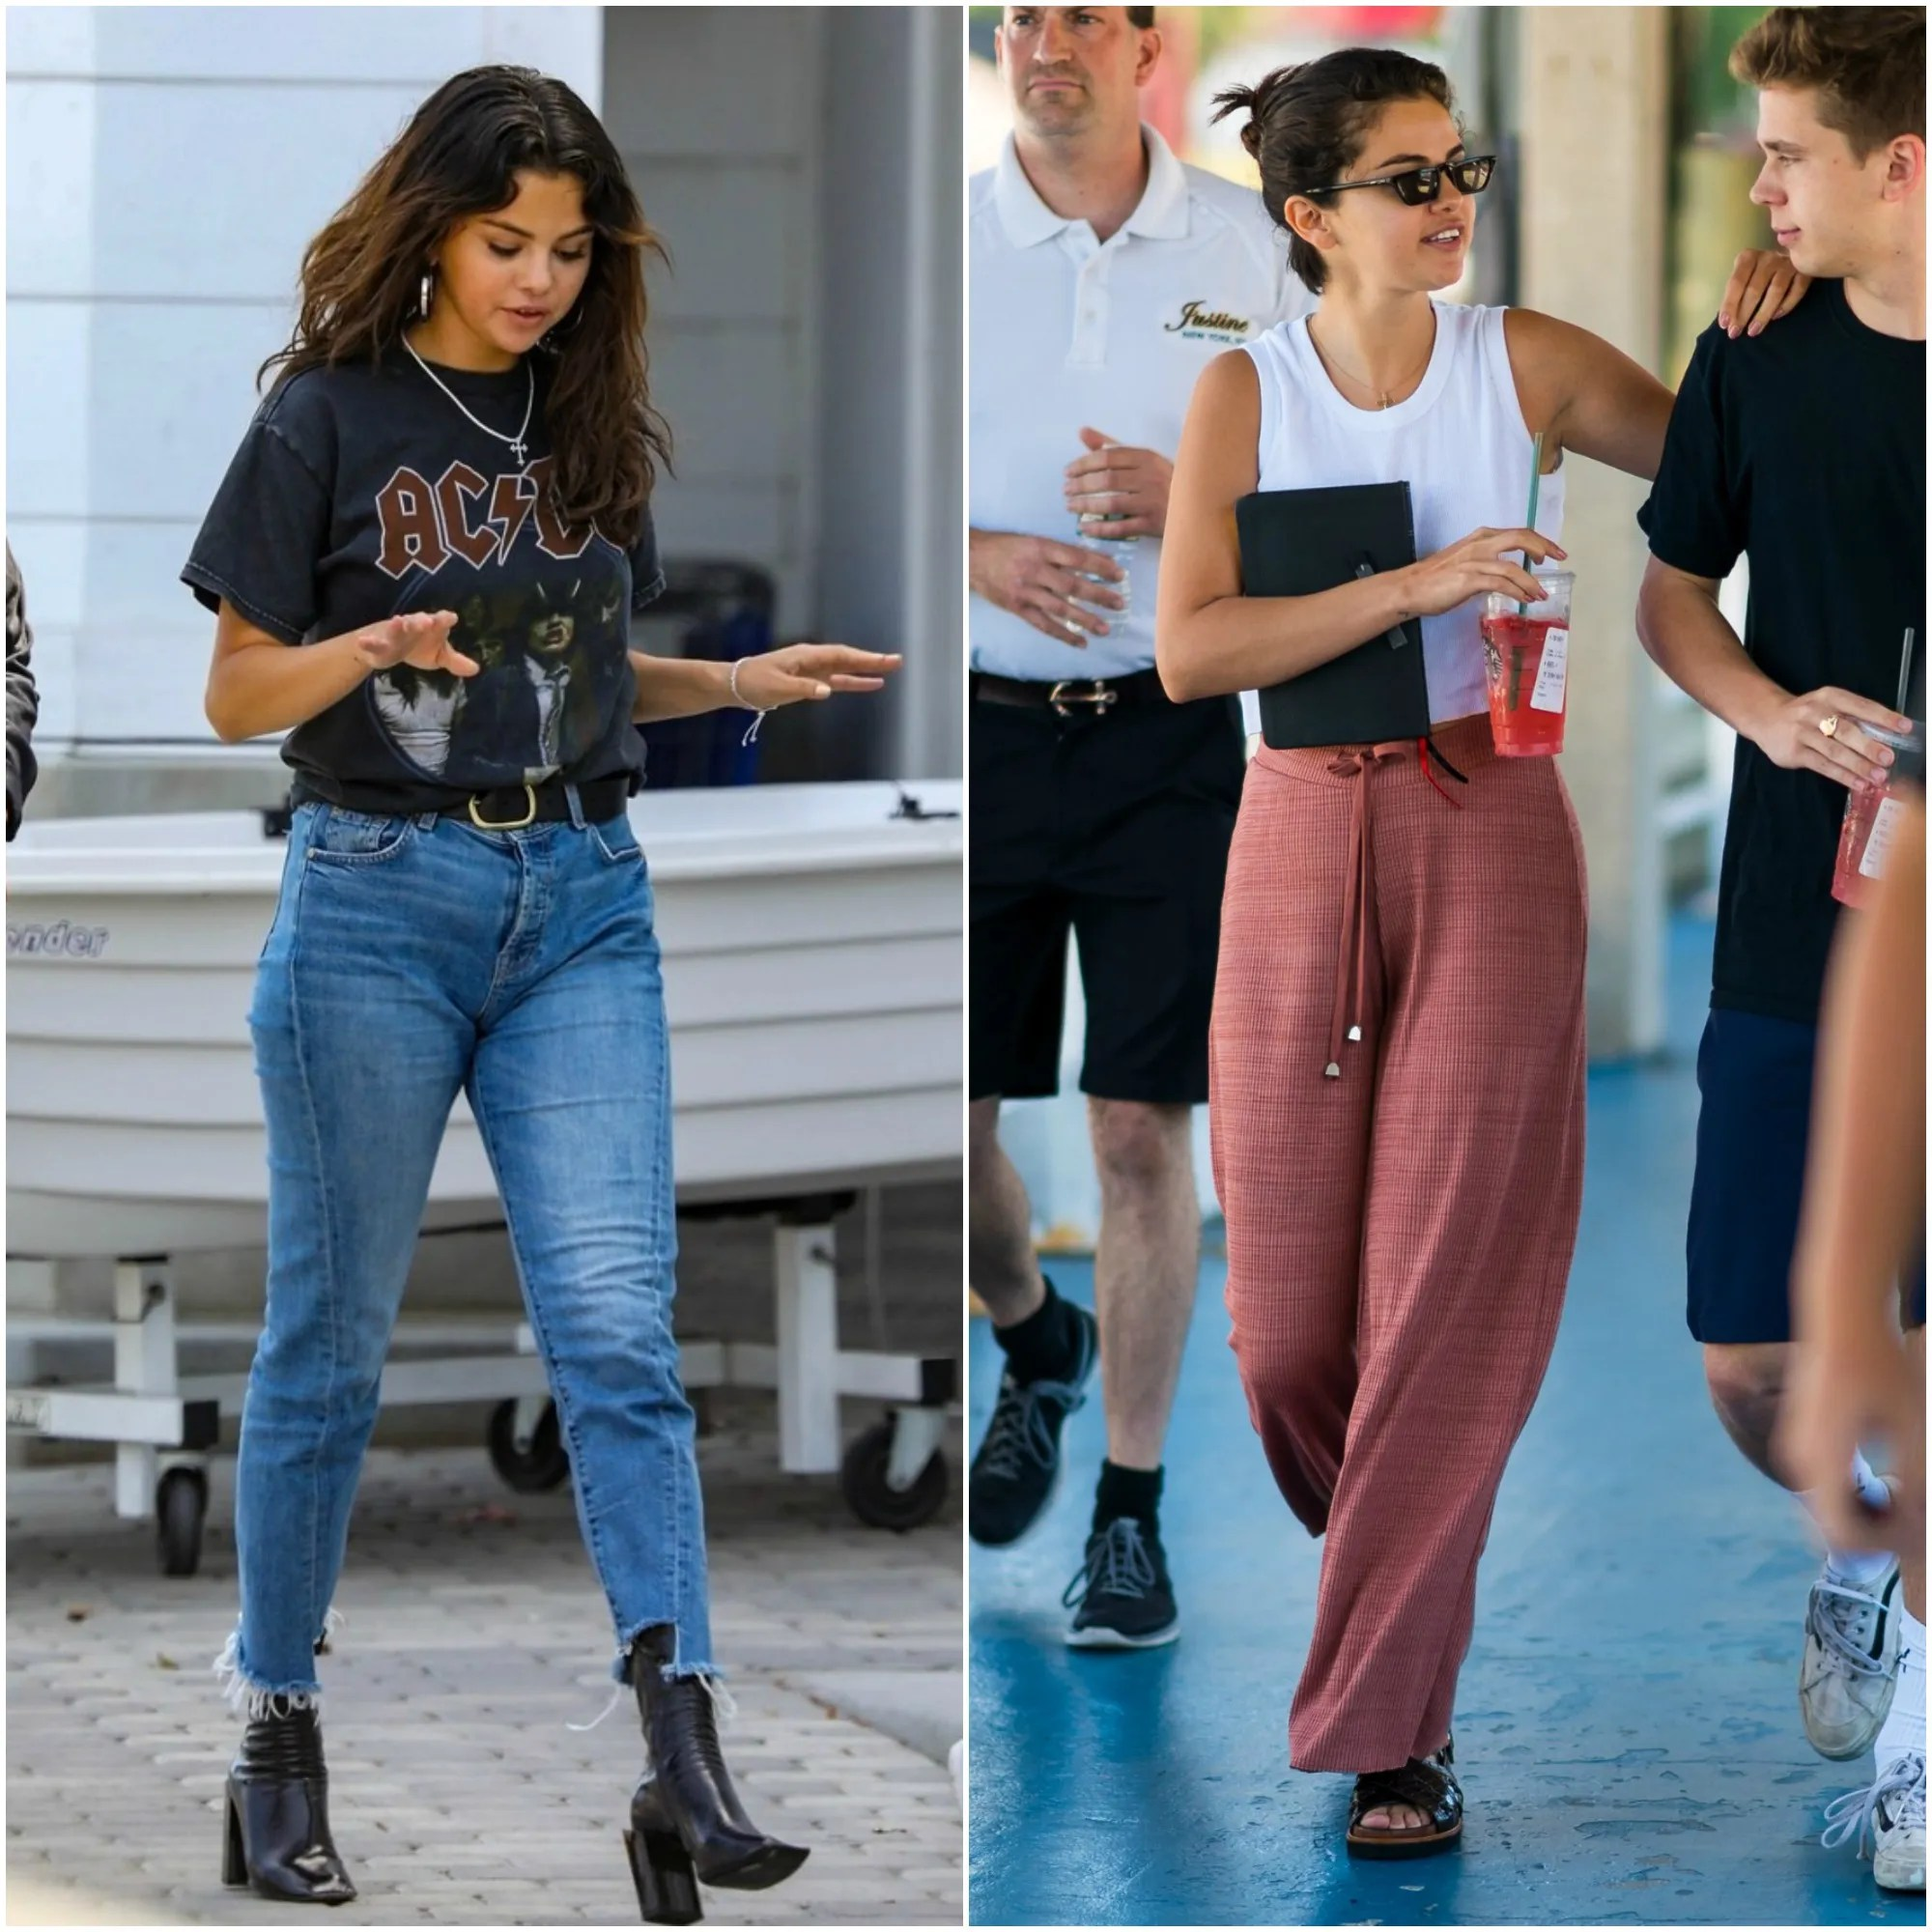 764a65402715c Selena Gomez is one of the most down-to-earth celebs we can think of. She  orders a medium number 7 at McDonalds, she loves rollercoasters, and even  though ...